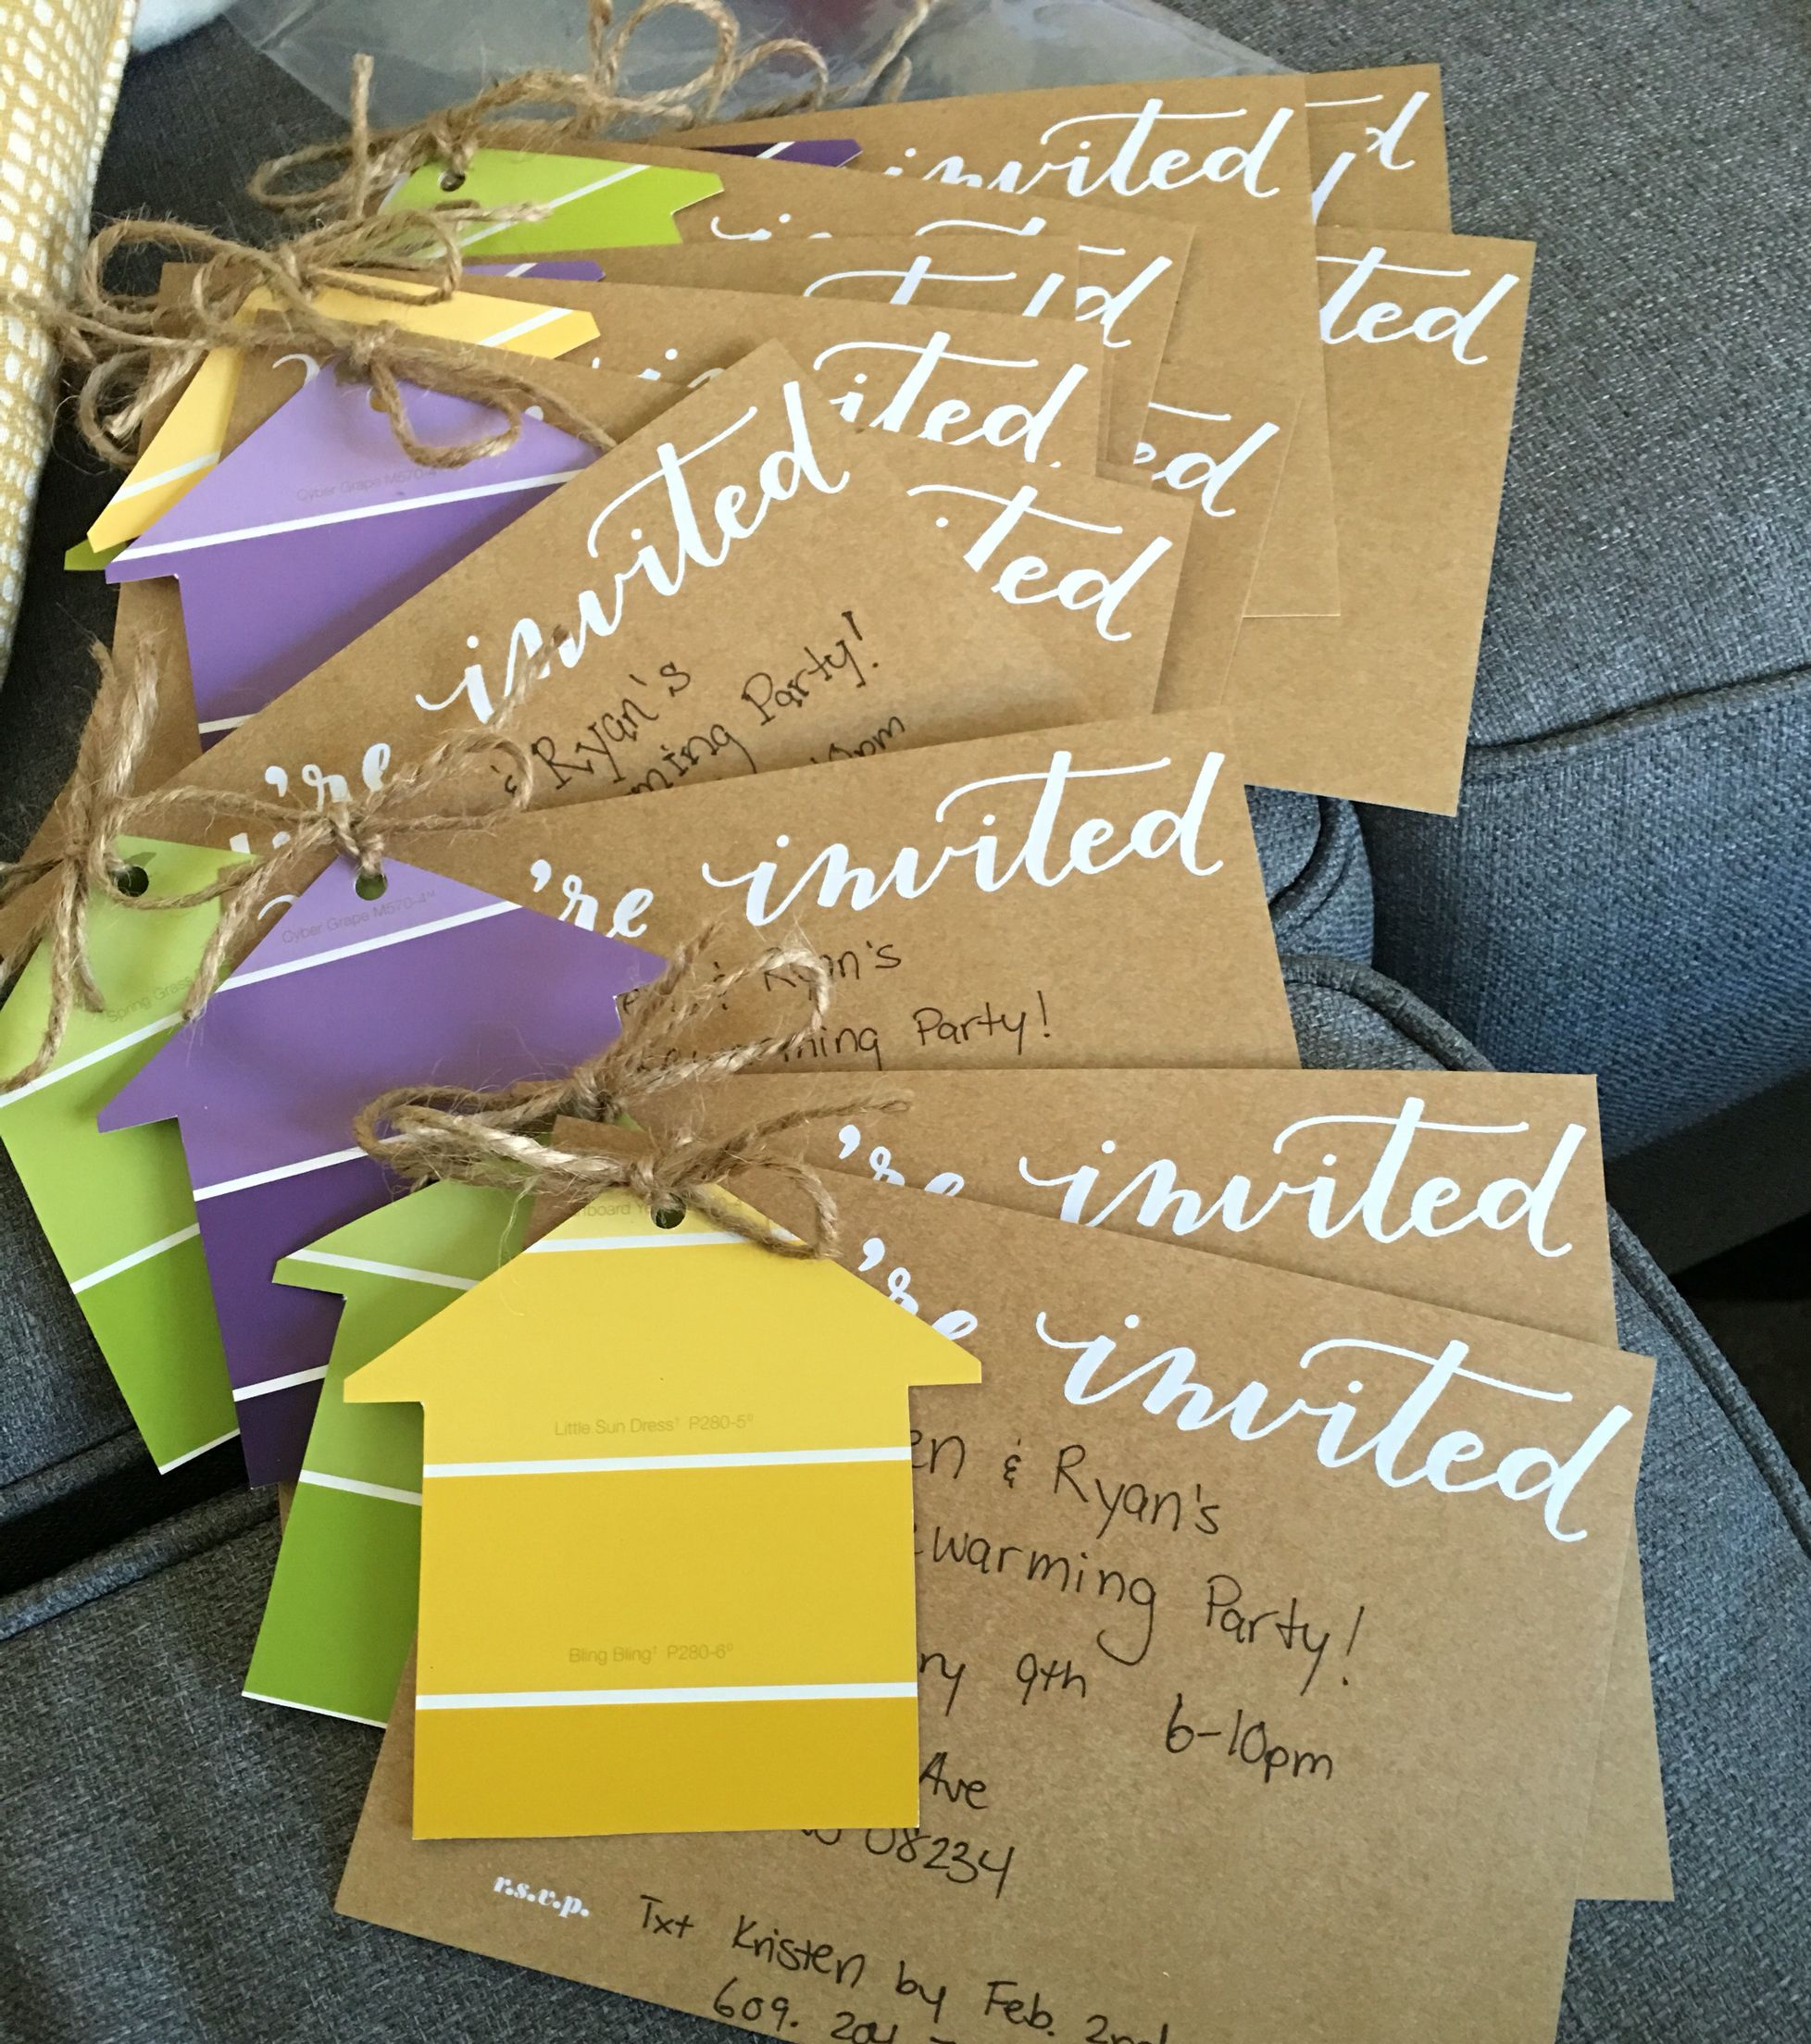 Our housewarming invitations apartment party ideas house warming invites also home pinterest rh no